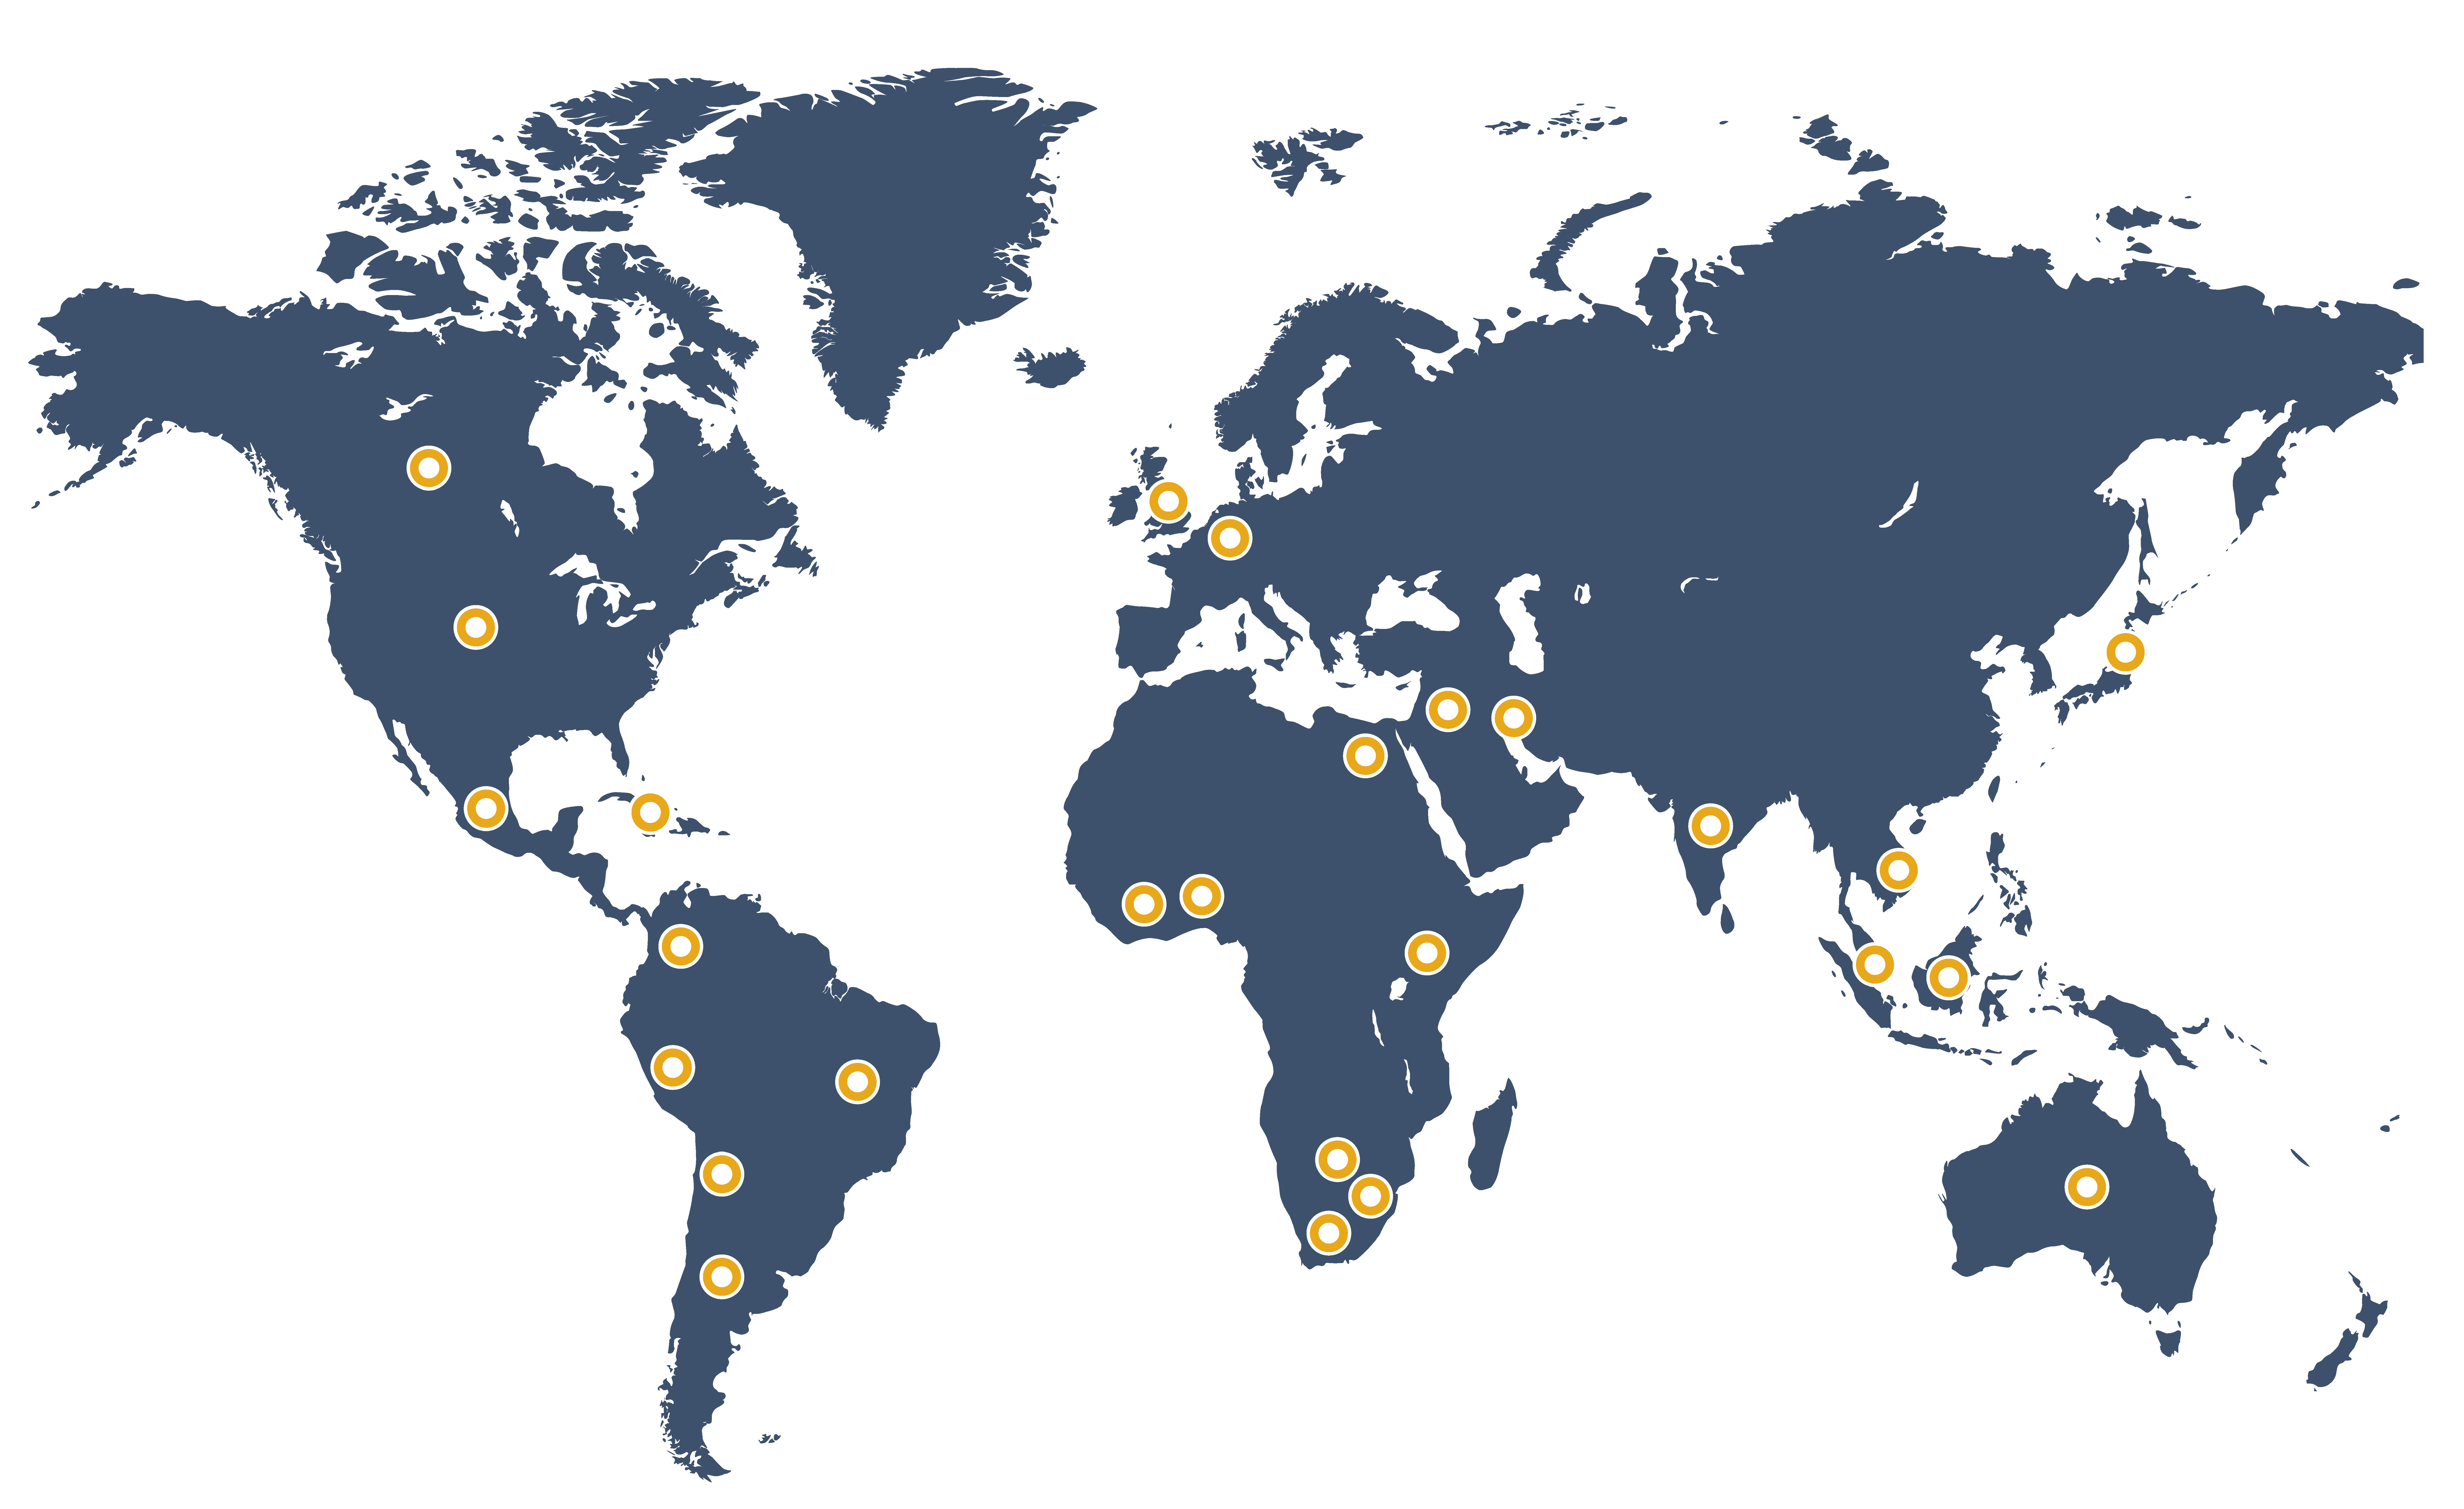 Map showing the locations of the global partners of the Rise program